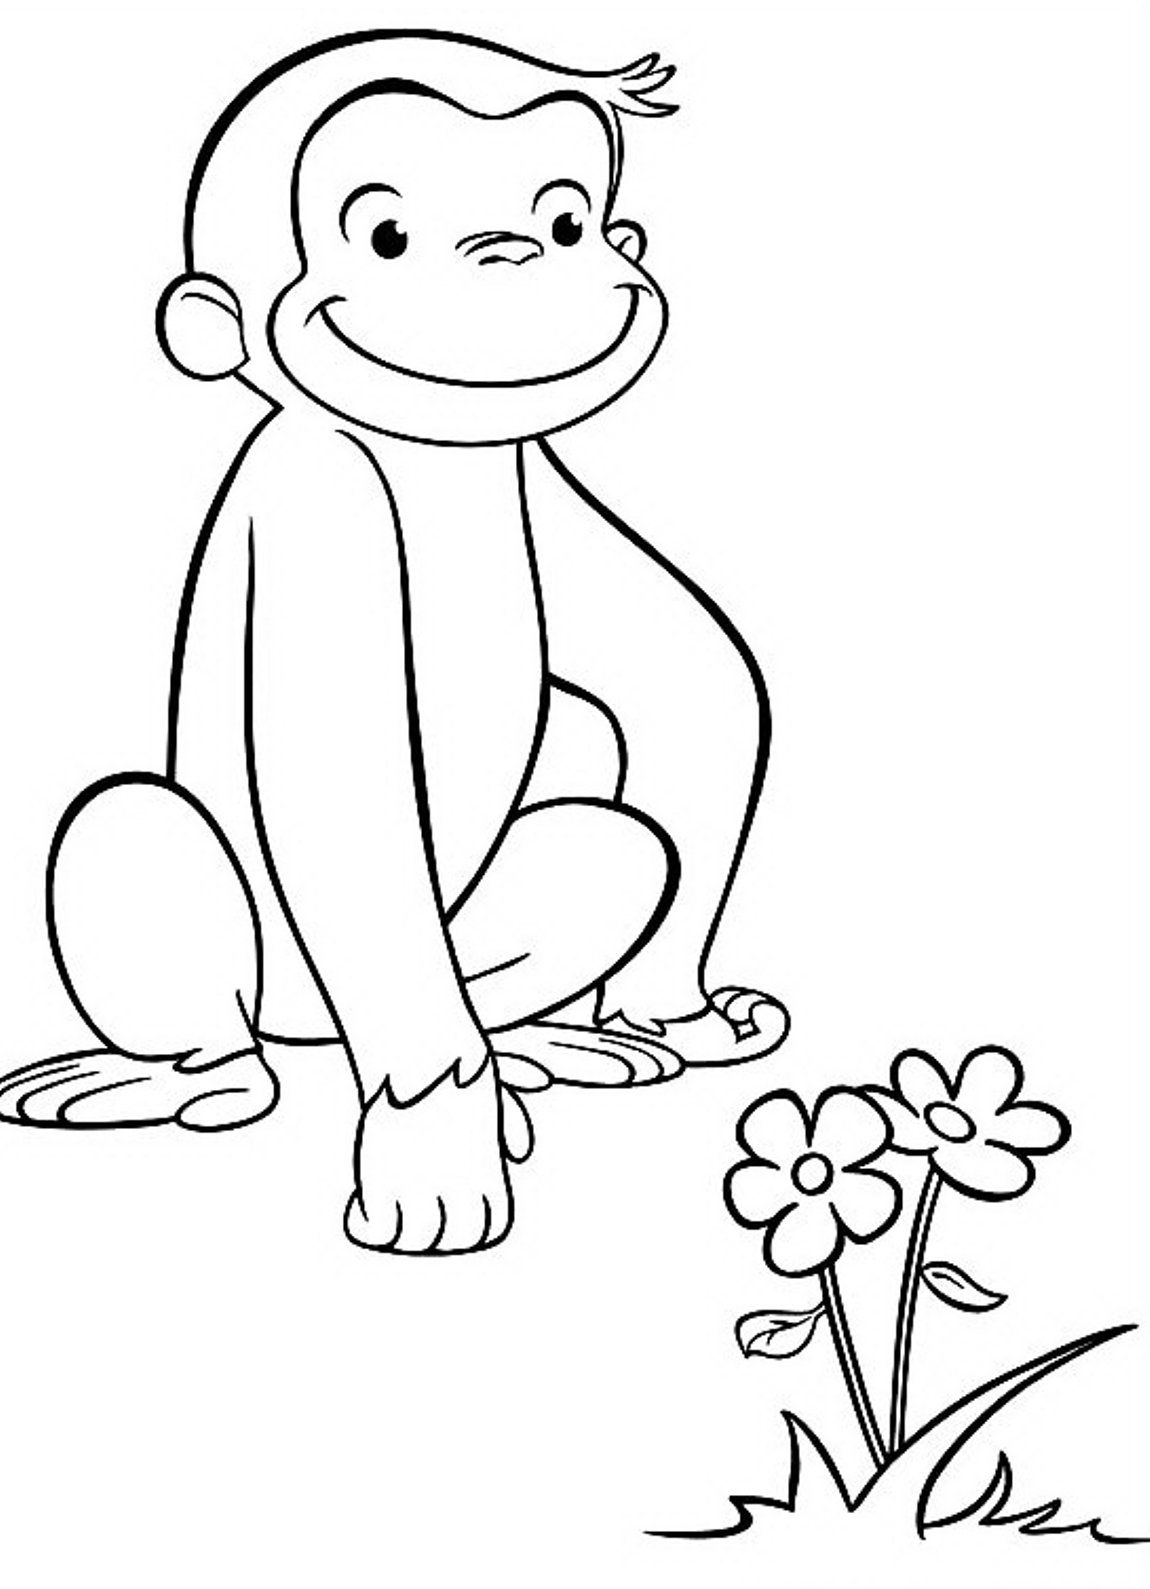 Curious George Coloring Printables Pbs Kids 20045 New Page